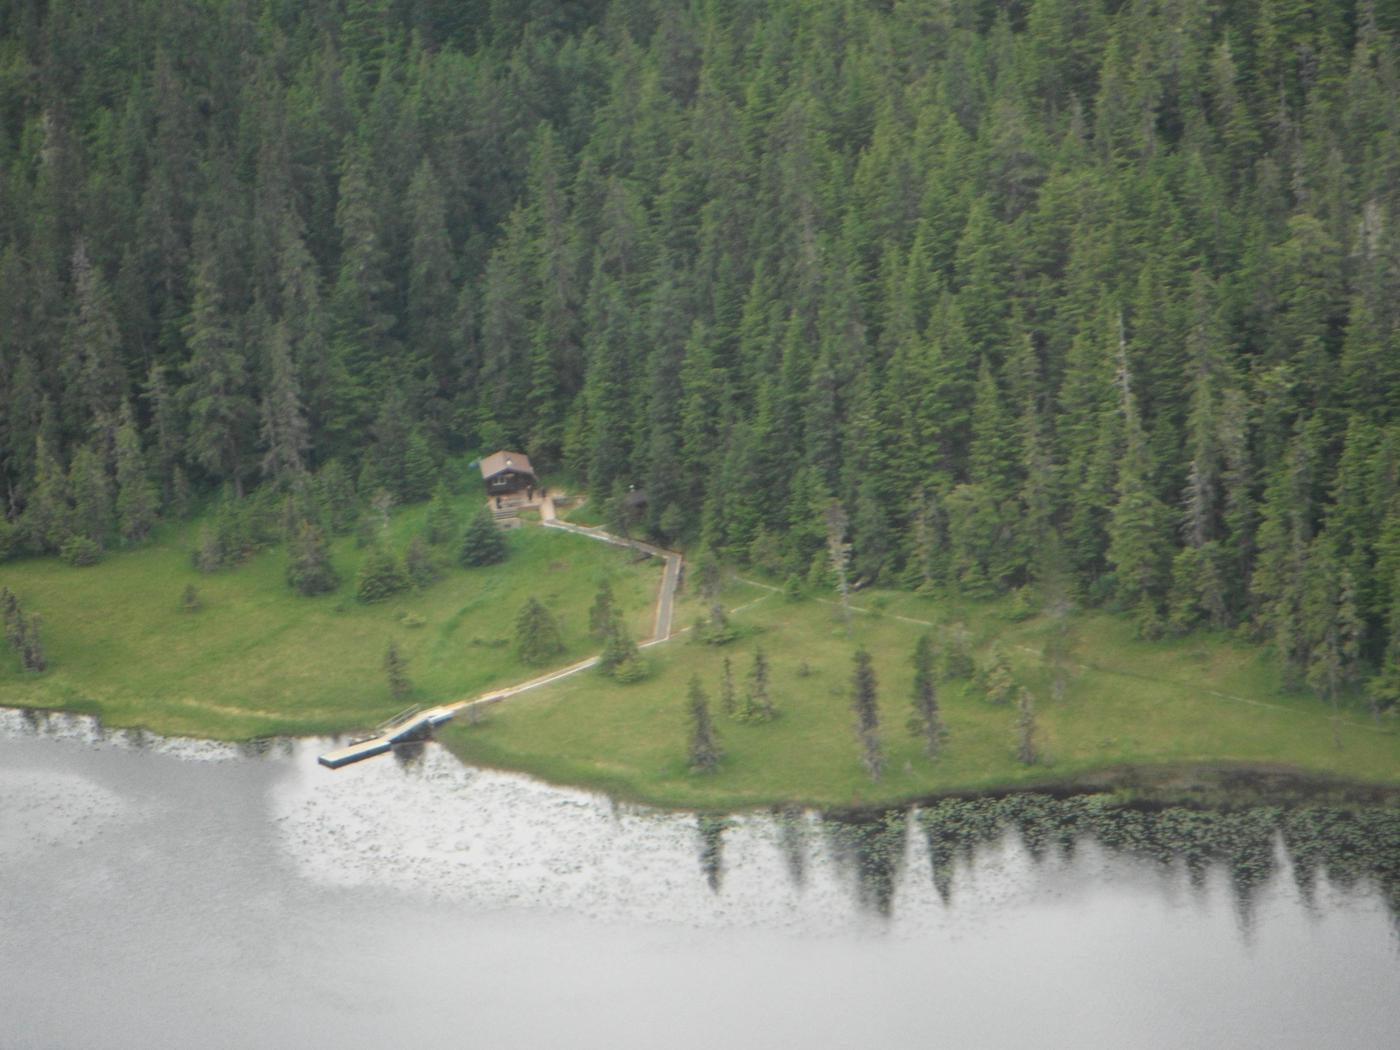 View of cabin from the air